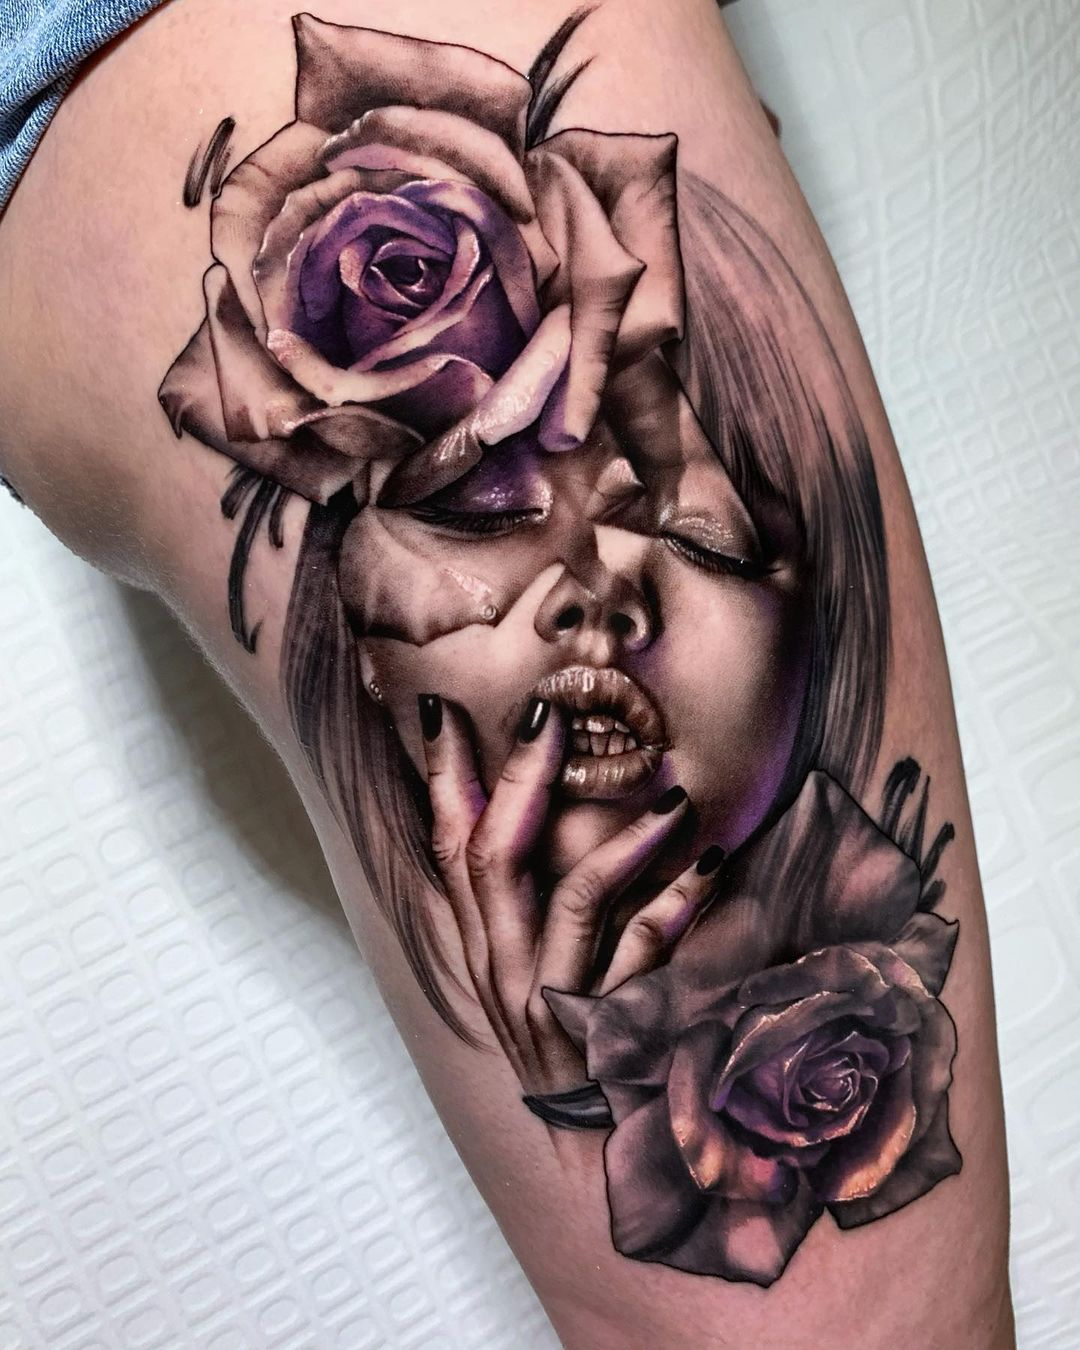 Thigh tattoo - girl with roses tattoo